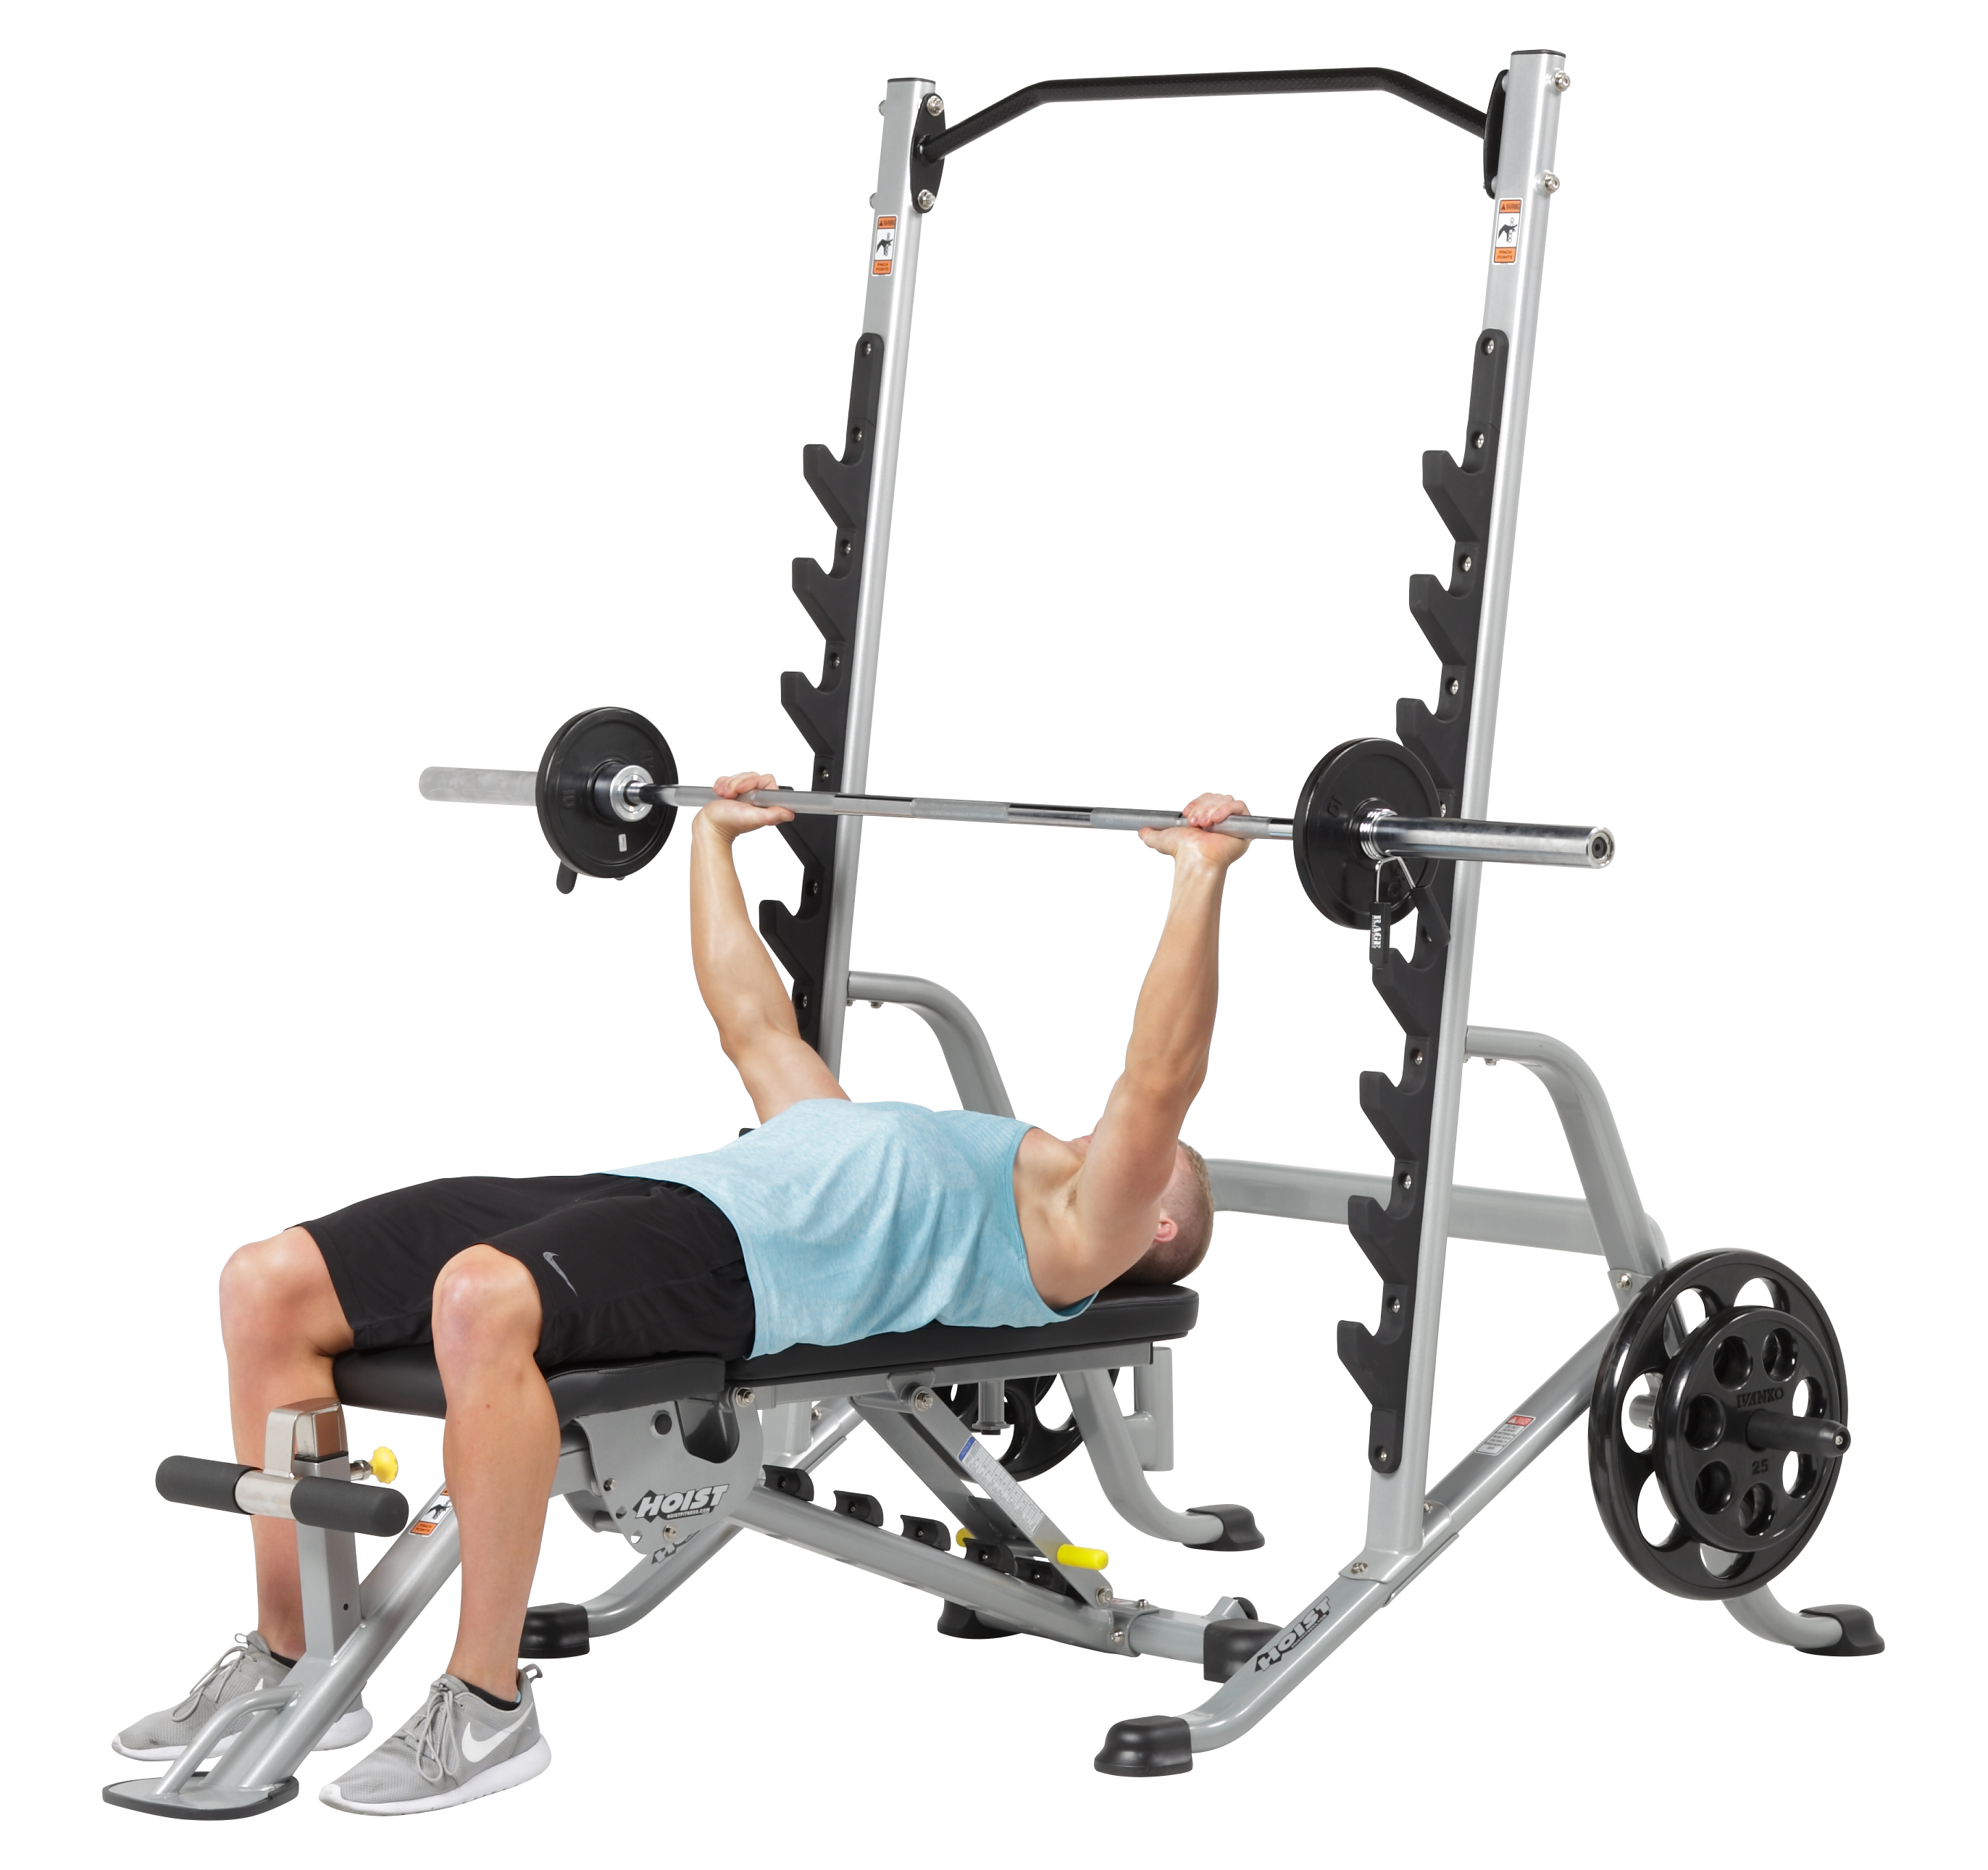 at package racks and squat strength powerhouse press fitness rack stands bench equipment